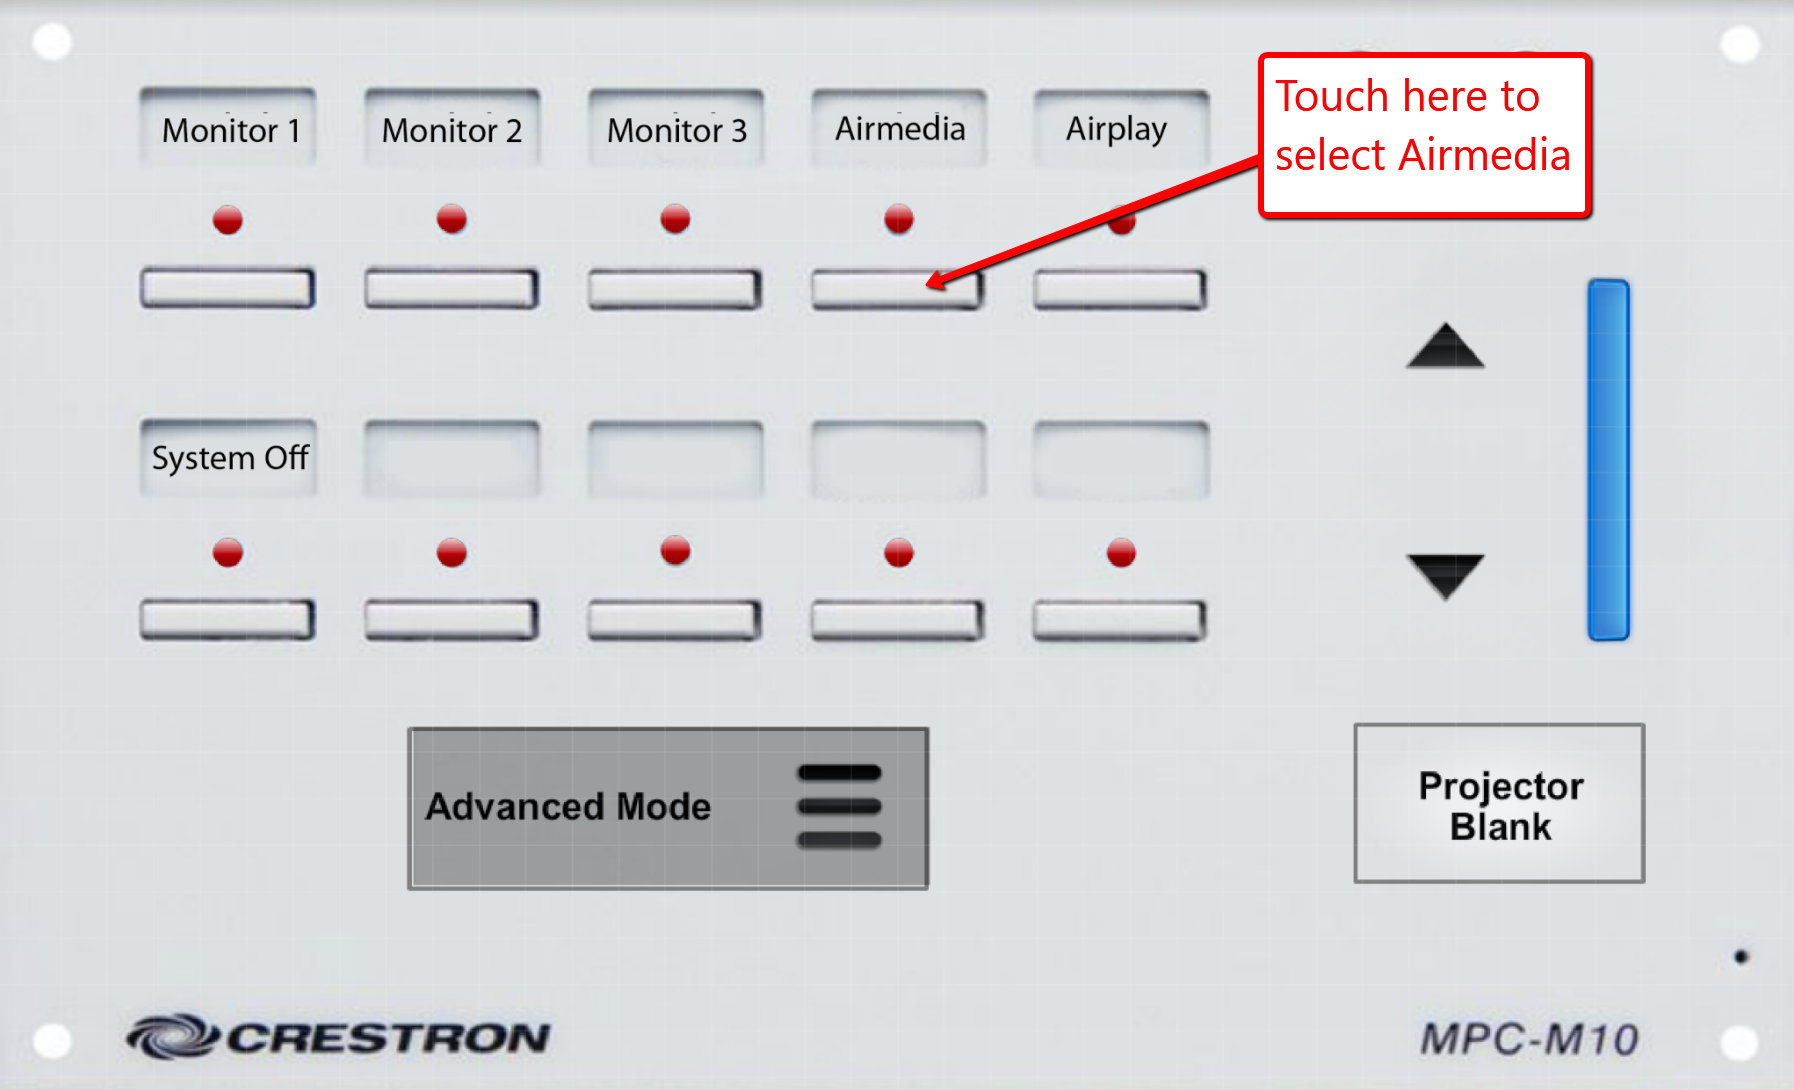 image depicting touch crestron unit